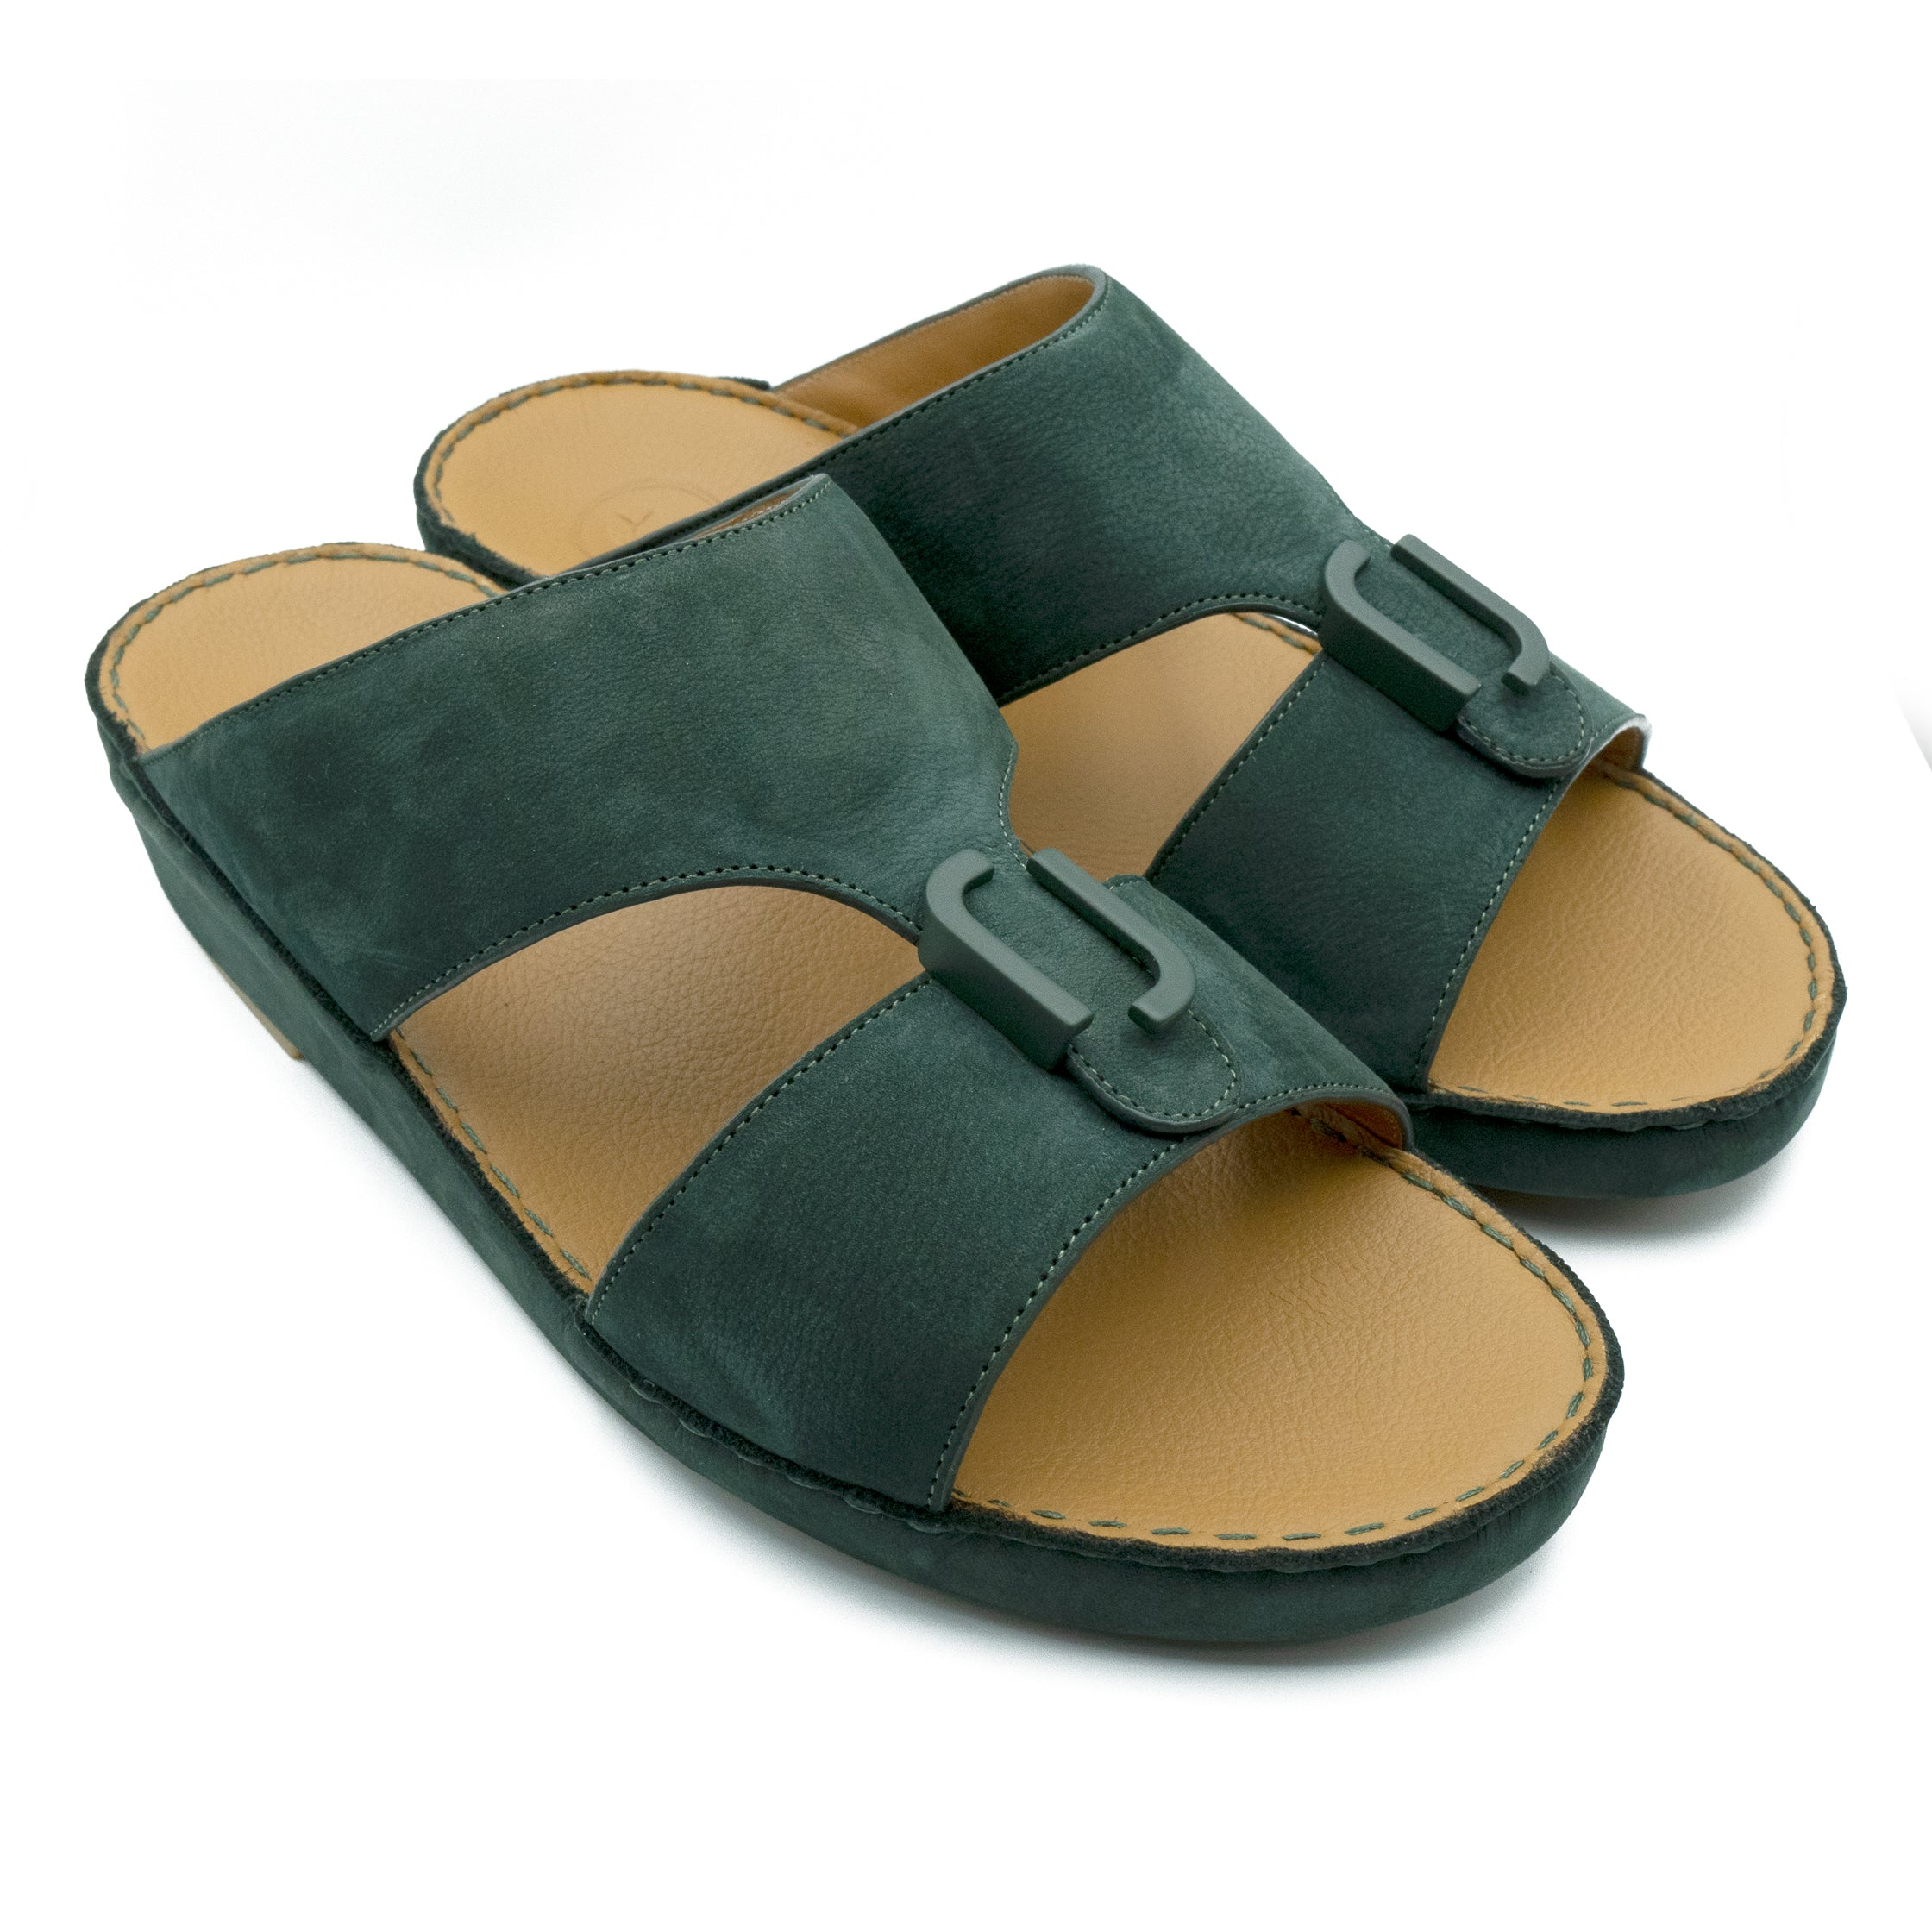 Bottle Green, Suede, Classic, Arabic, Flat, Sandals, Ramadan Collection, Arabic, Sandals, Accessories